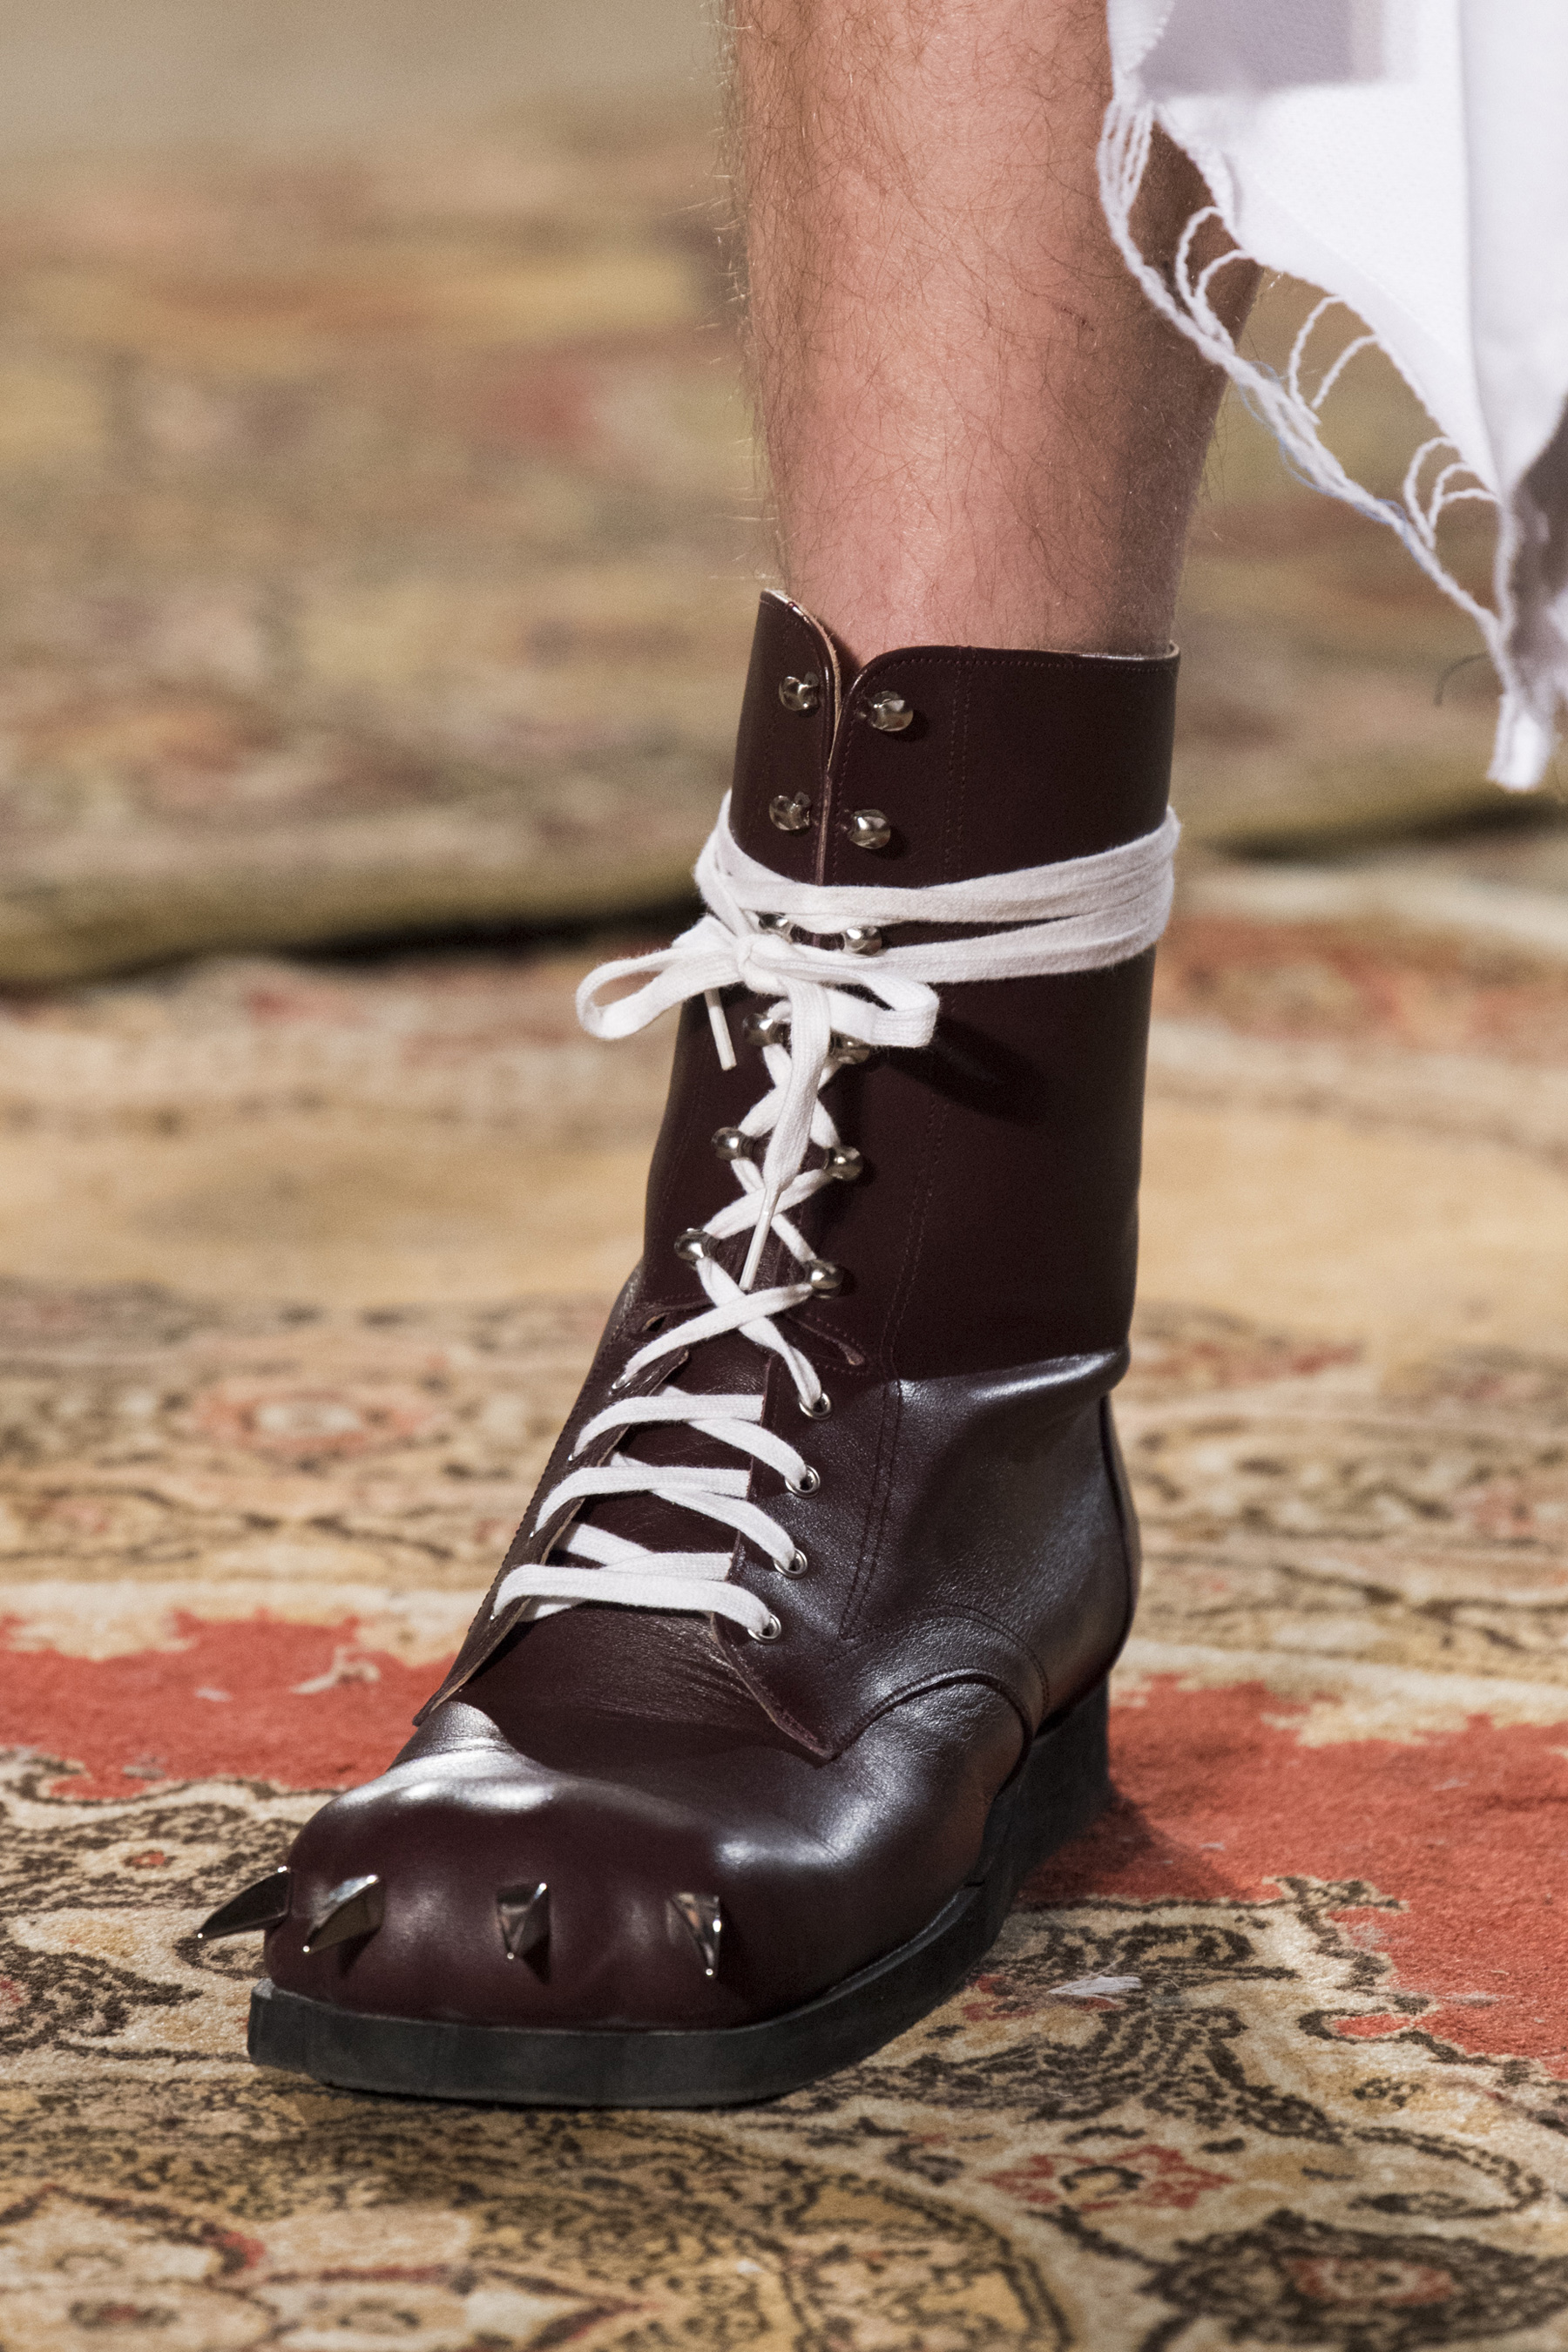 Charles Jeffrey Loverboy Fall 2019 Men's Fashion Show details Details